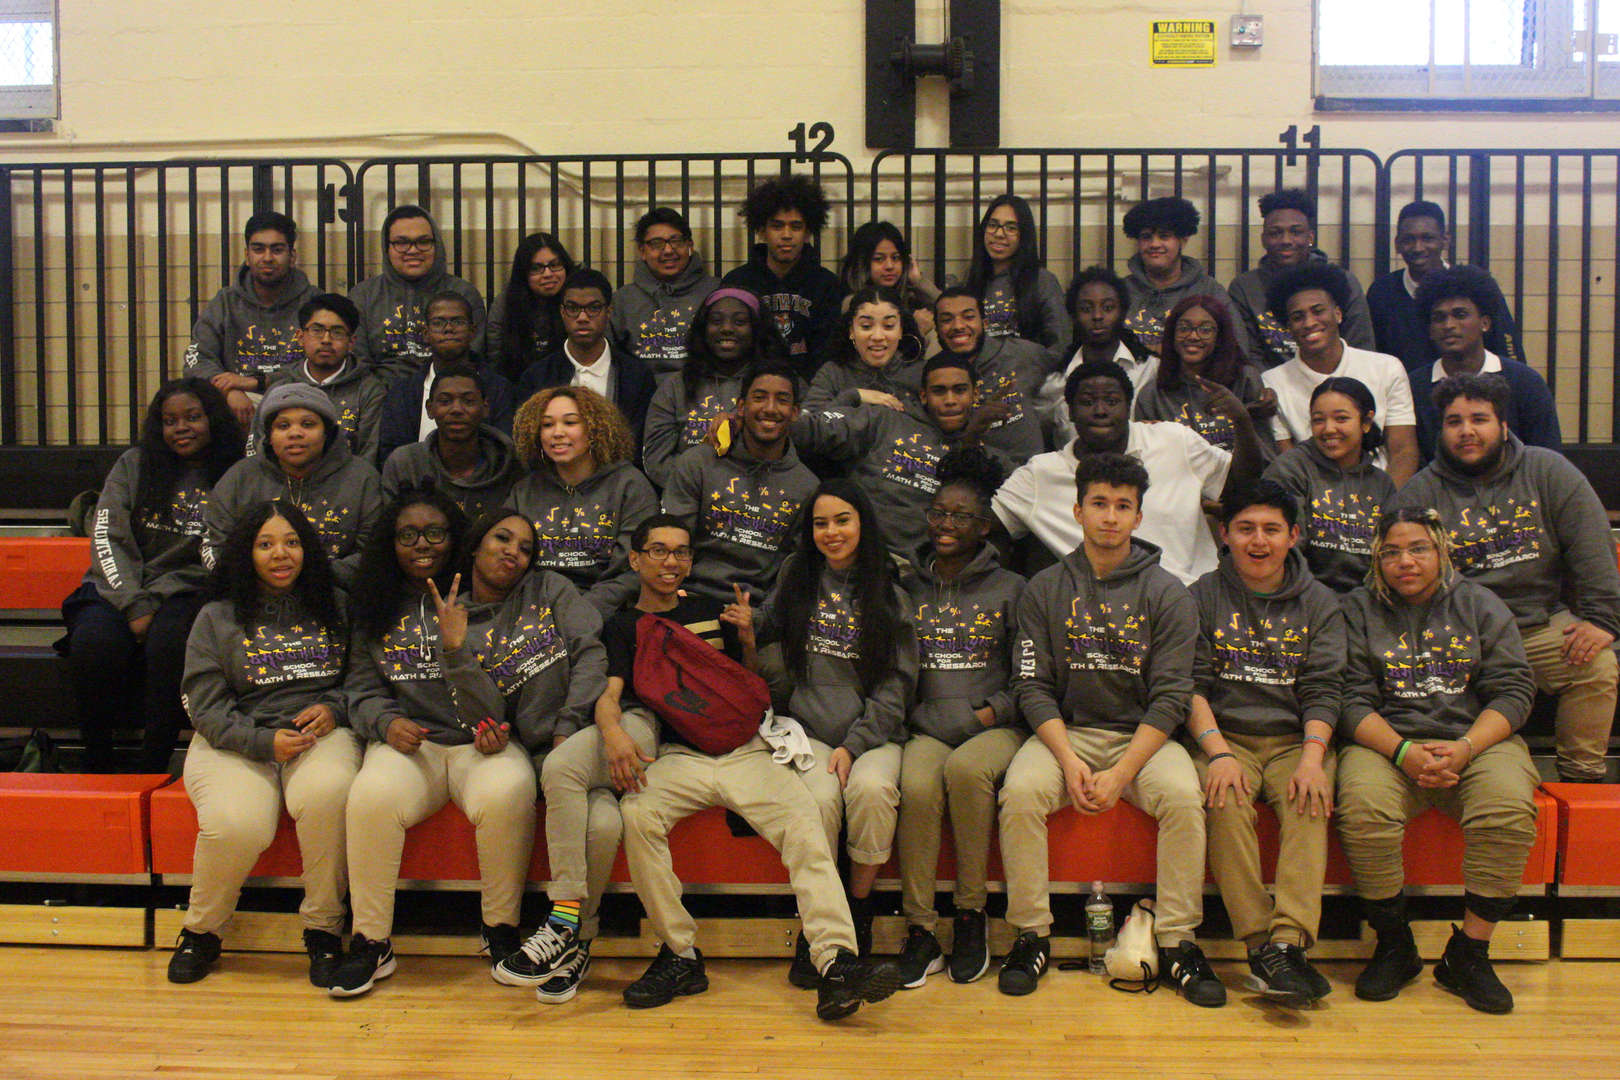 Team photo of students.